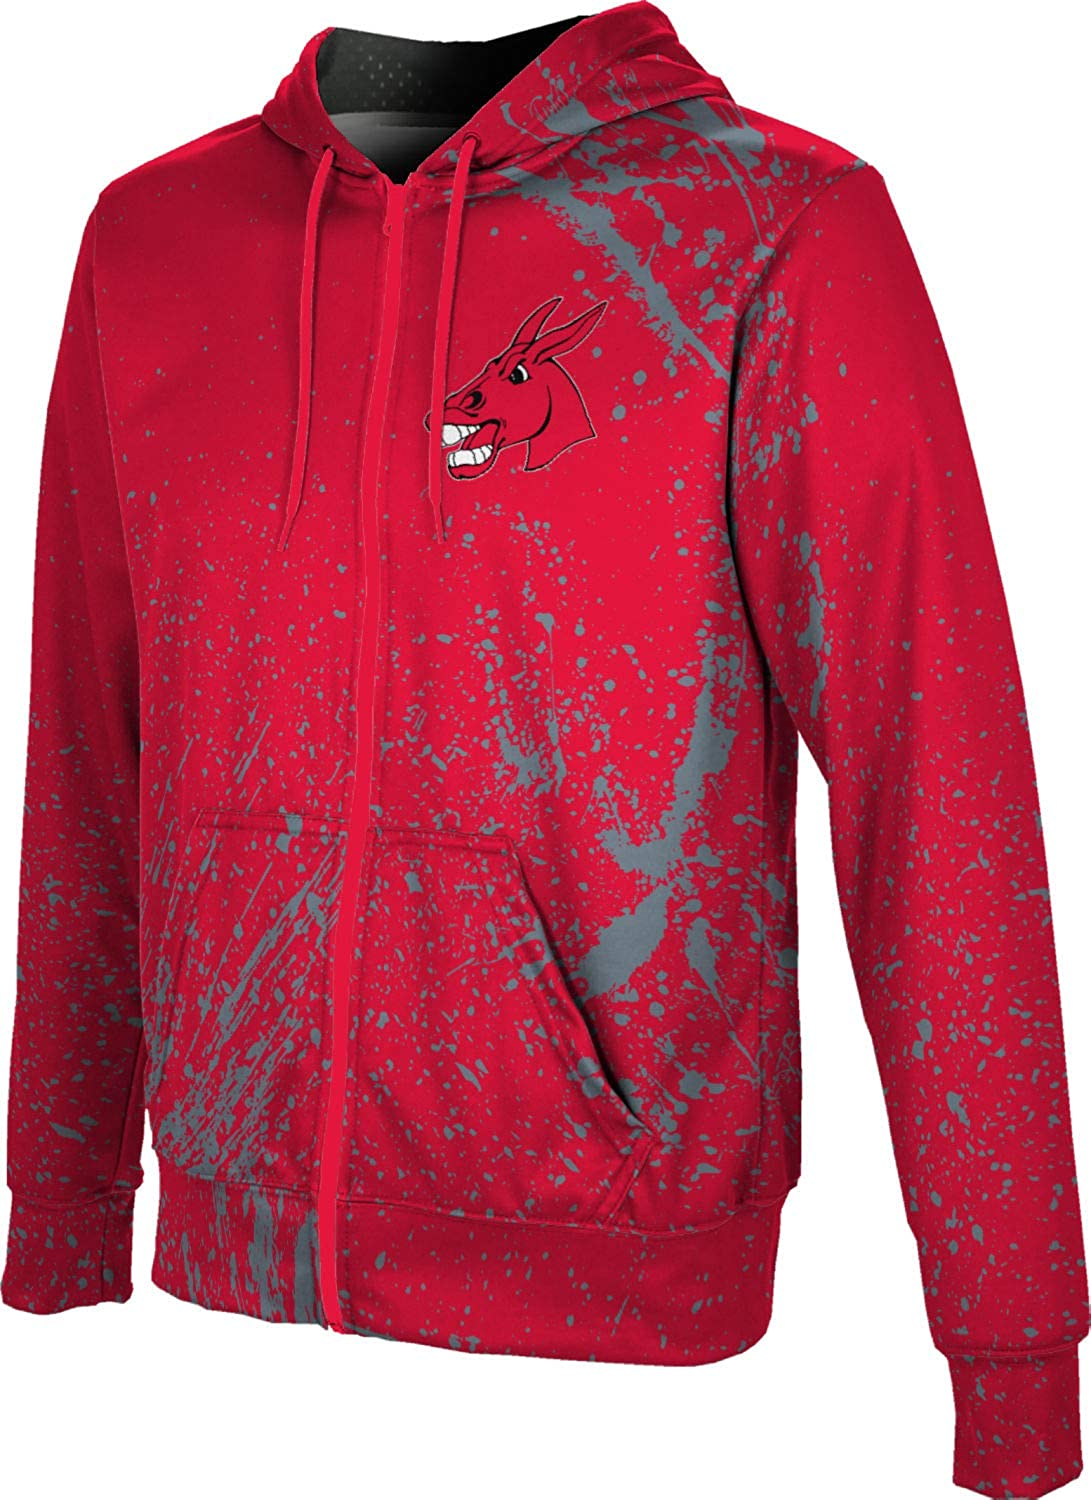 Splatter ProSphere University of Central Missouri Mens Full Zip Hoodie